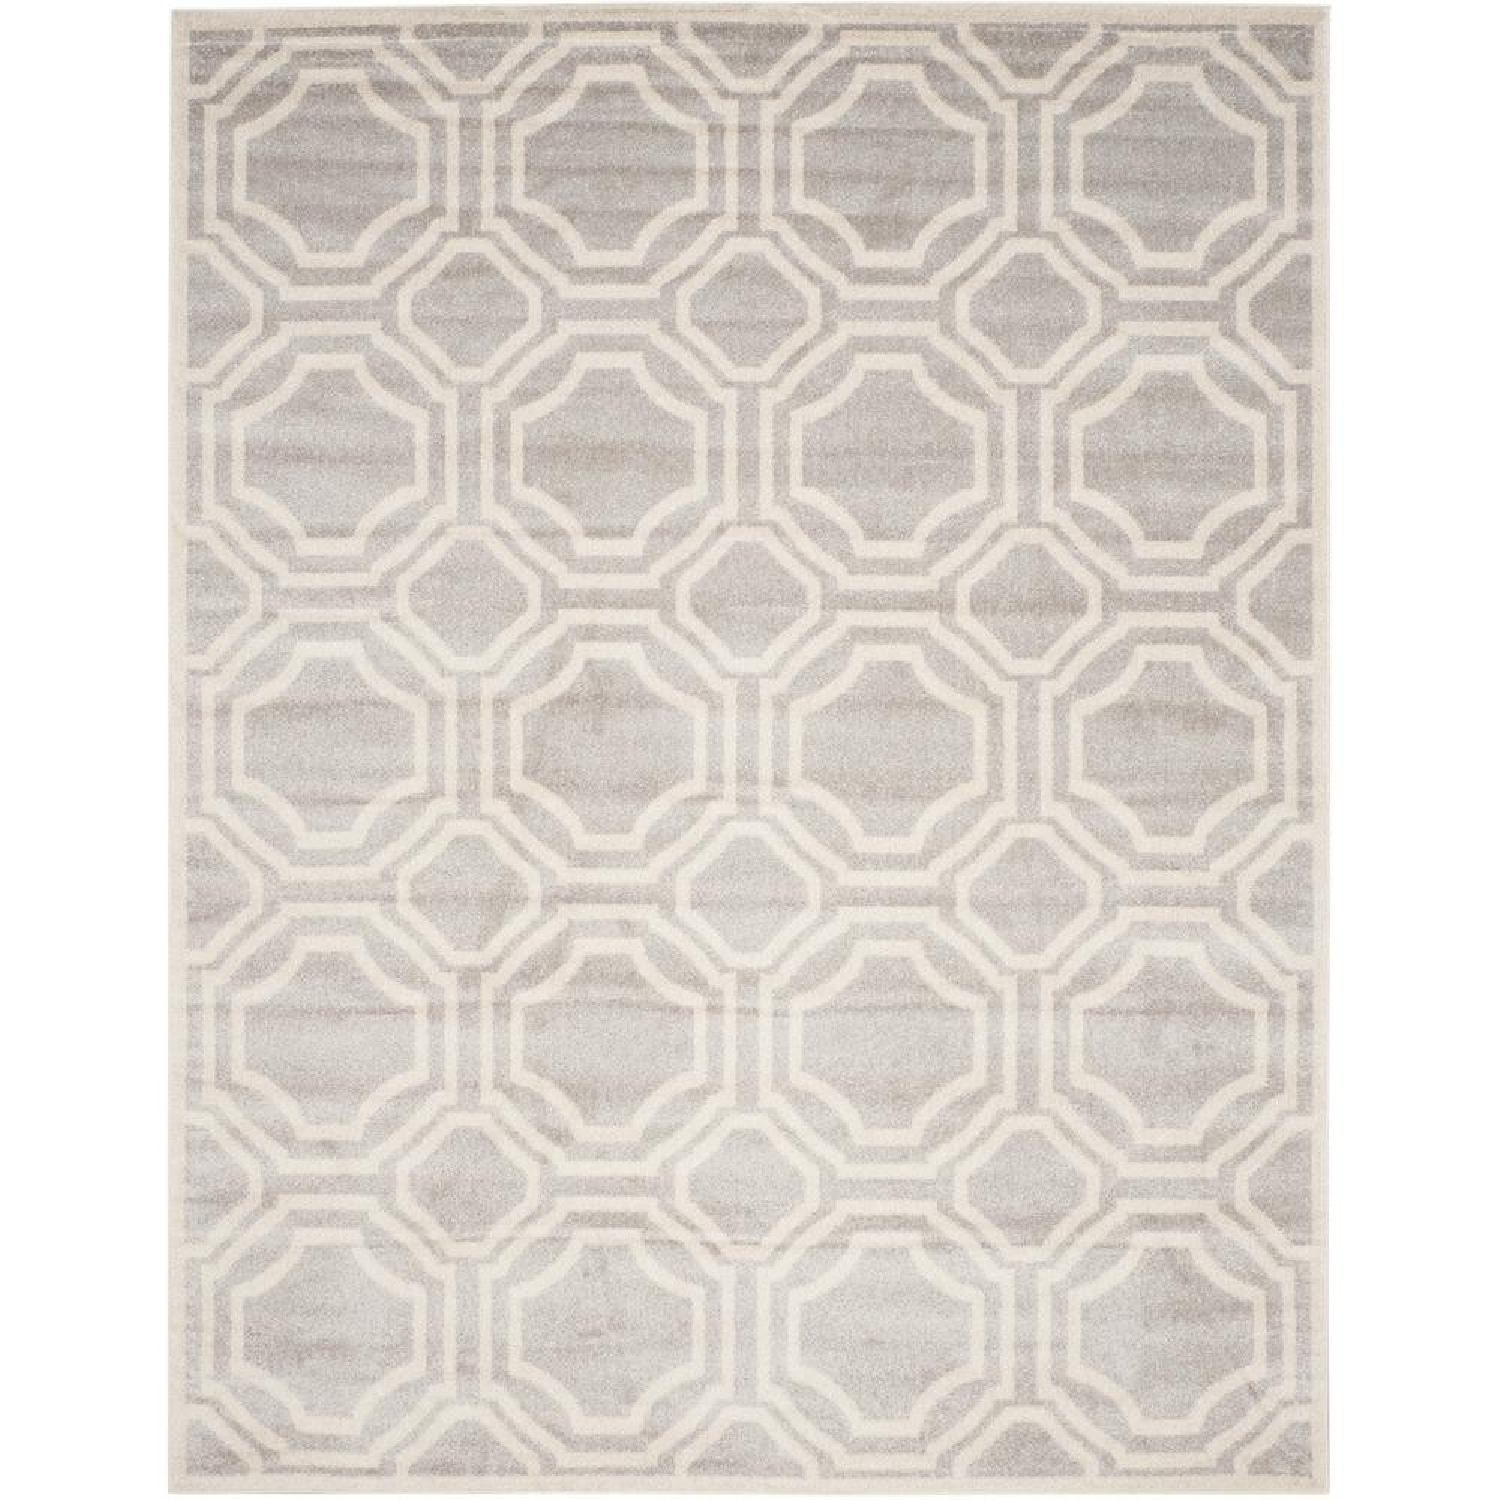 Safavieh Indoor/Outdoor Amherst Light Grey/Ivory Rug - image-0